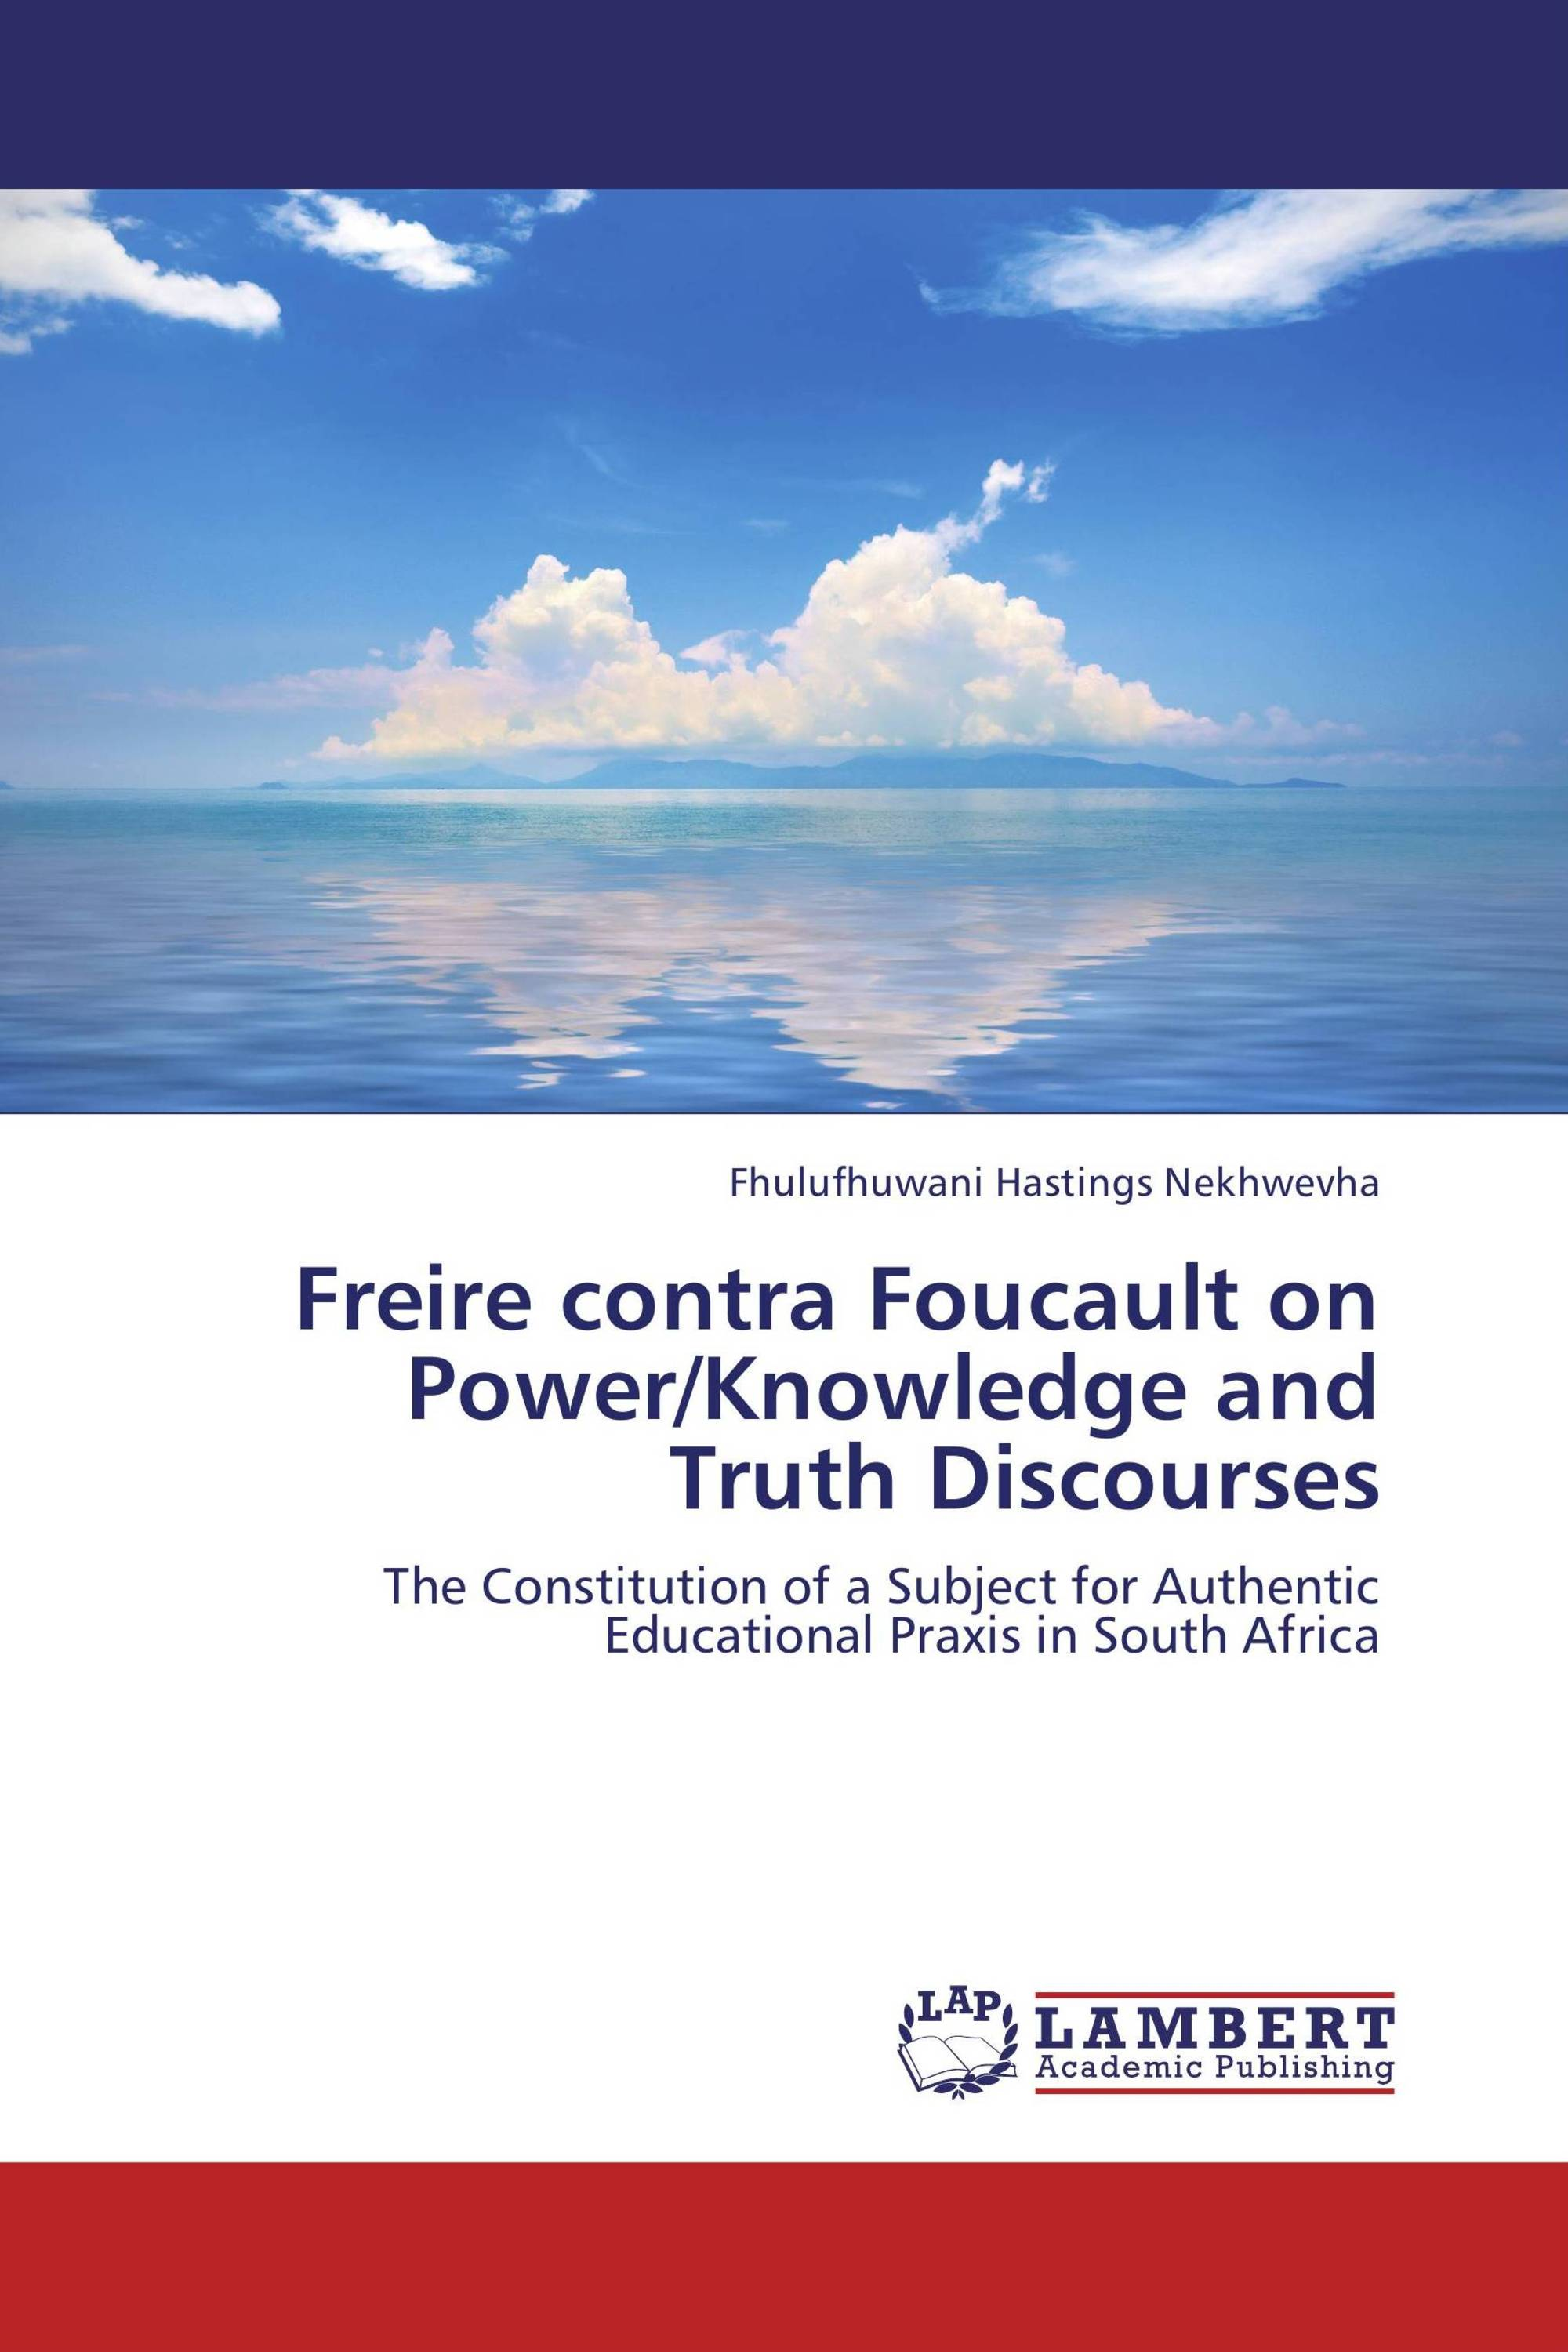 Freire contra Foucault on Power/Knowledge and Truth Discourses